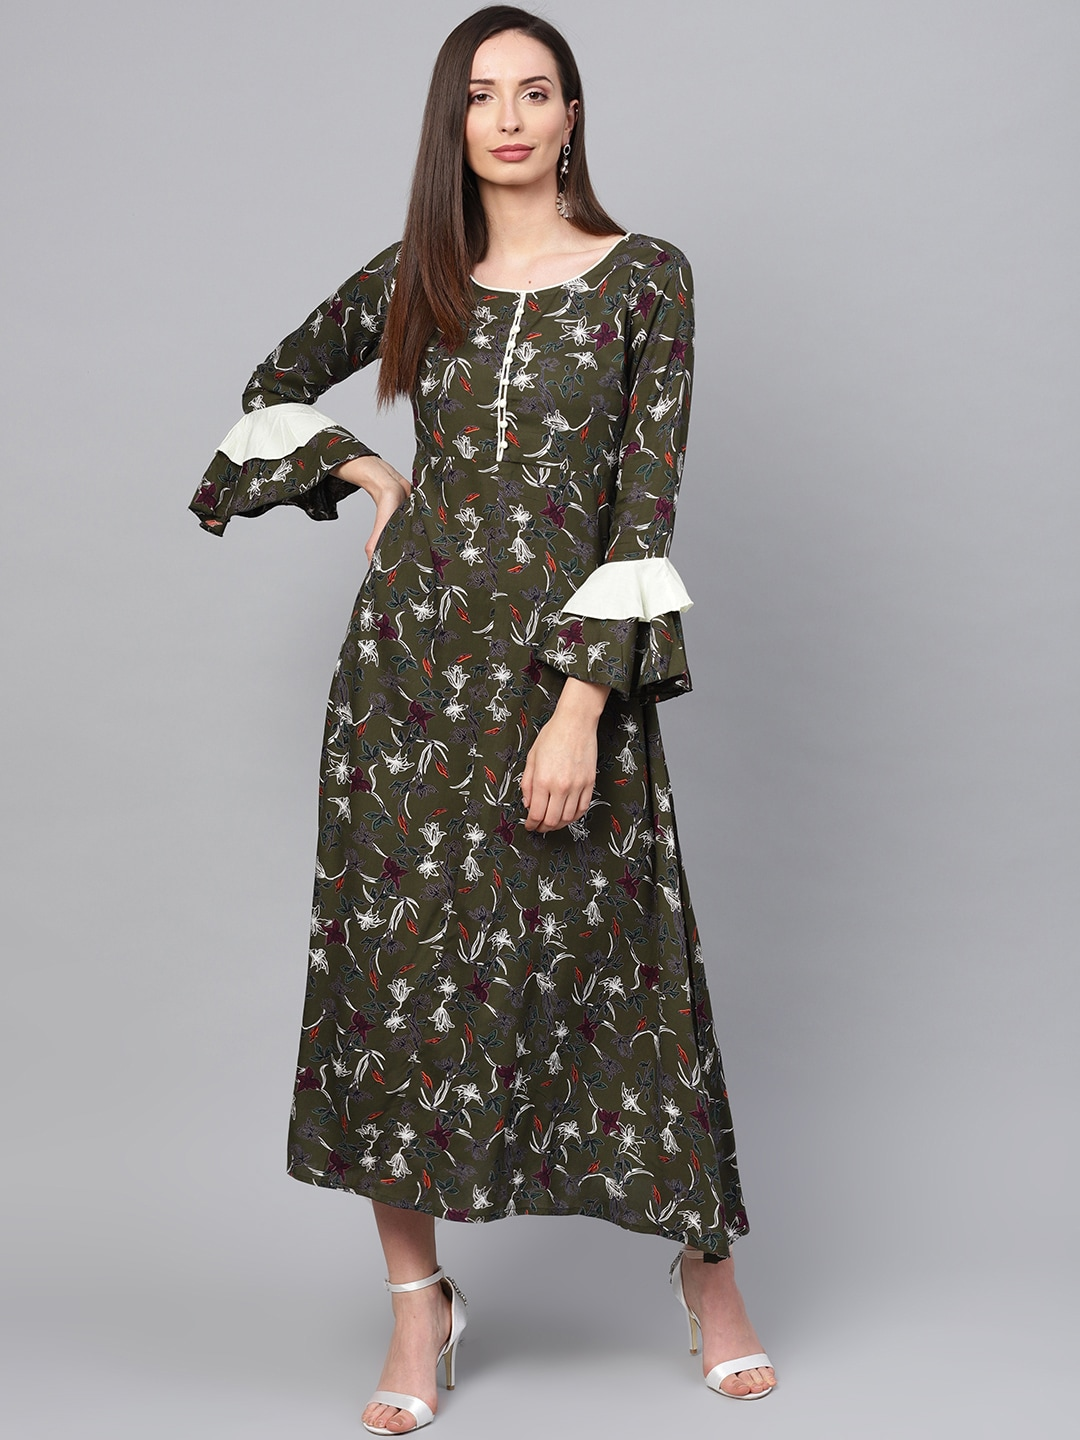 d957d72e336 Sweater Dress - Buy Sweater Dresses Online in India